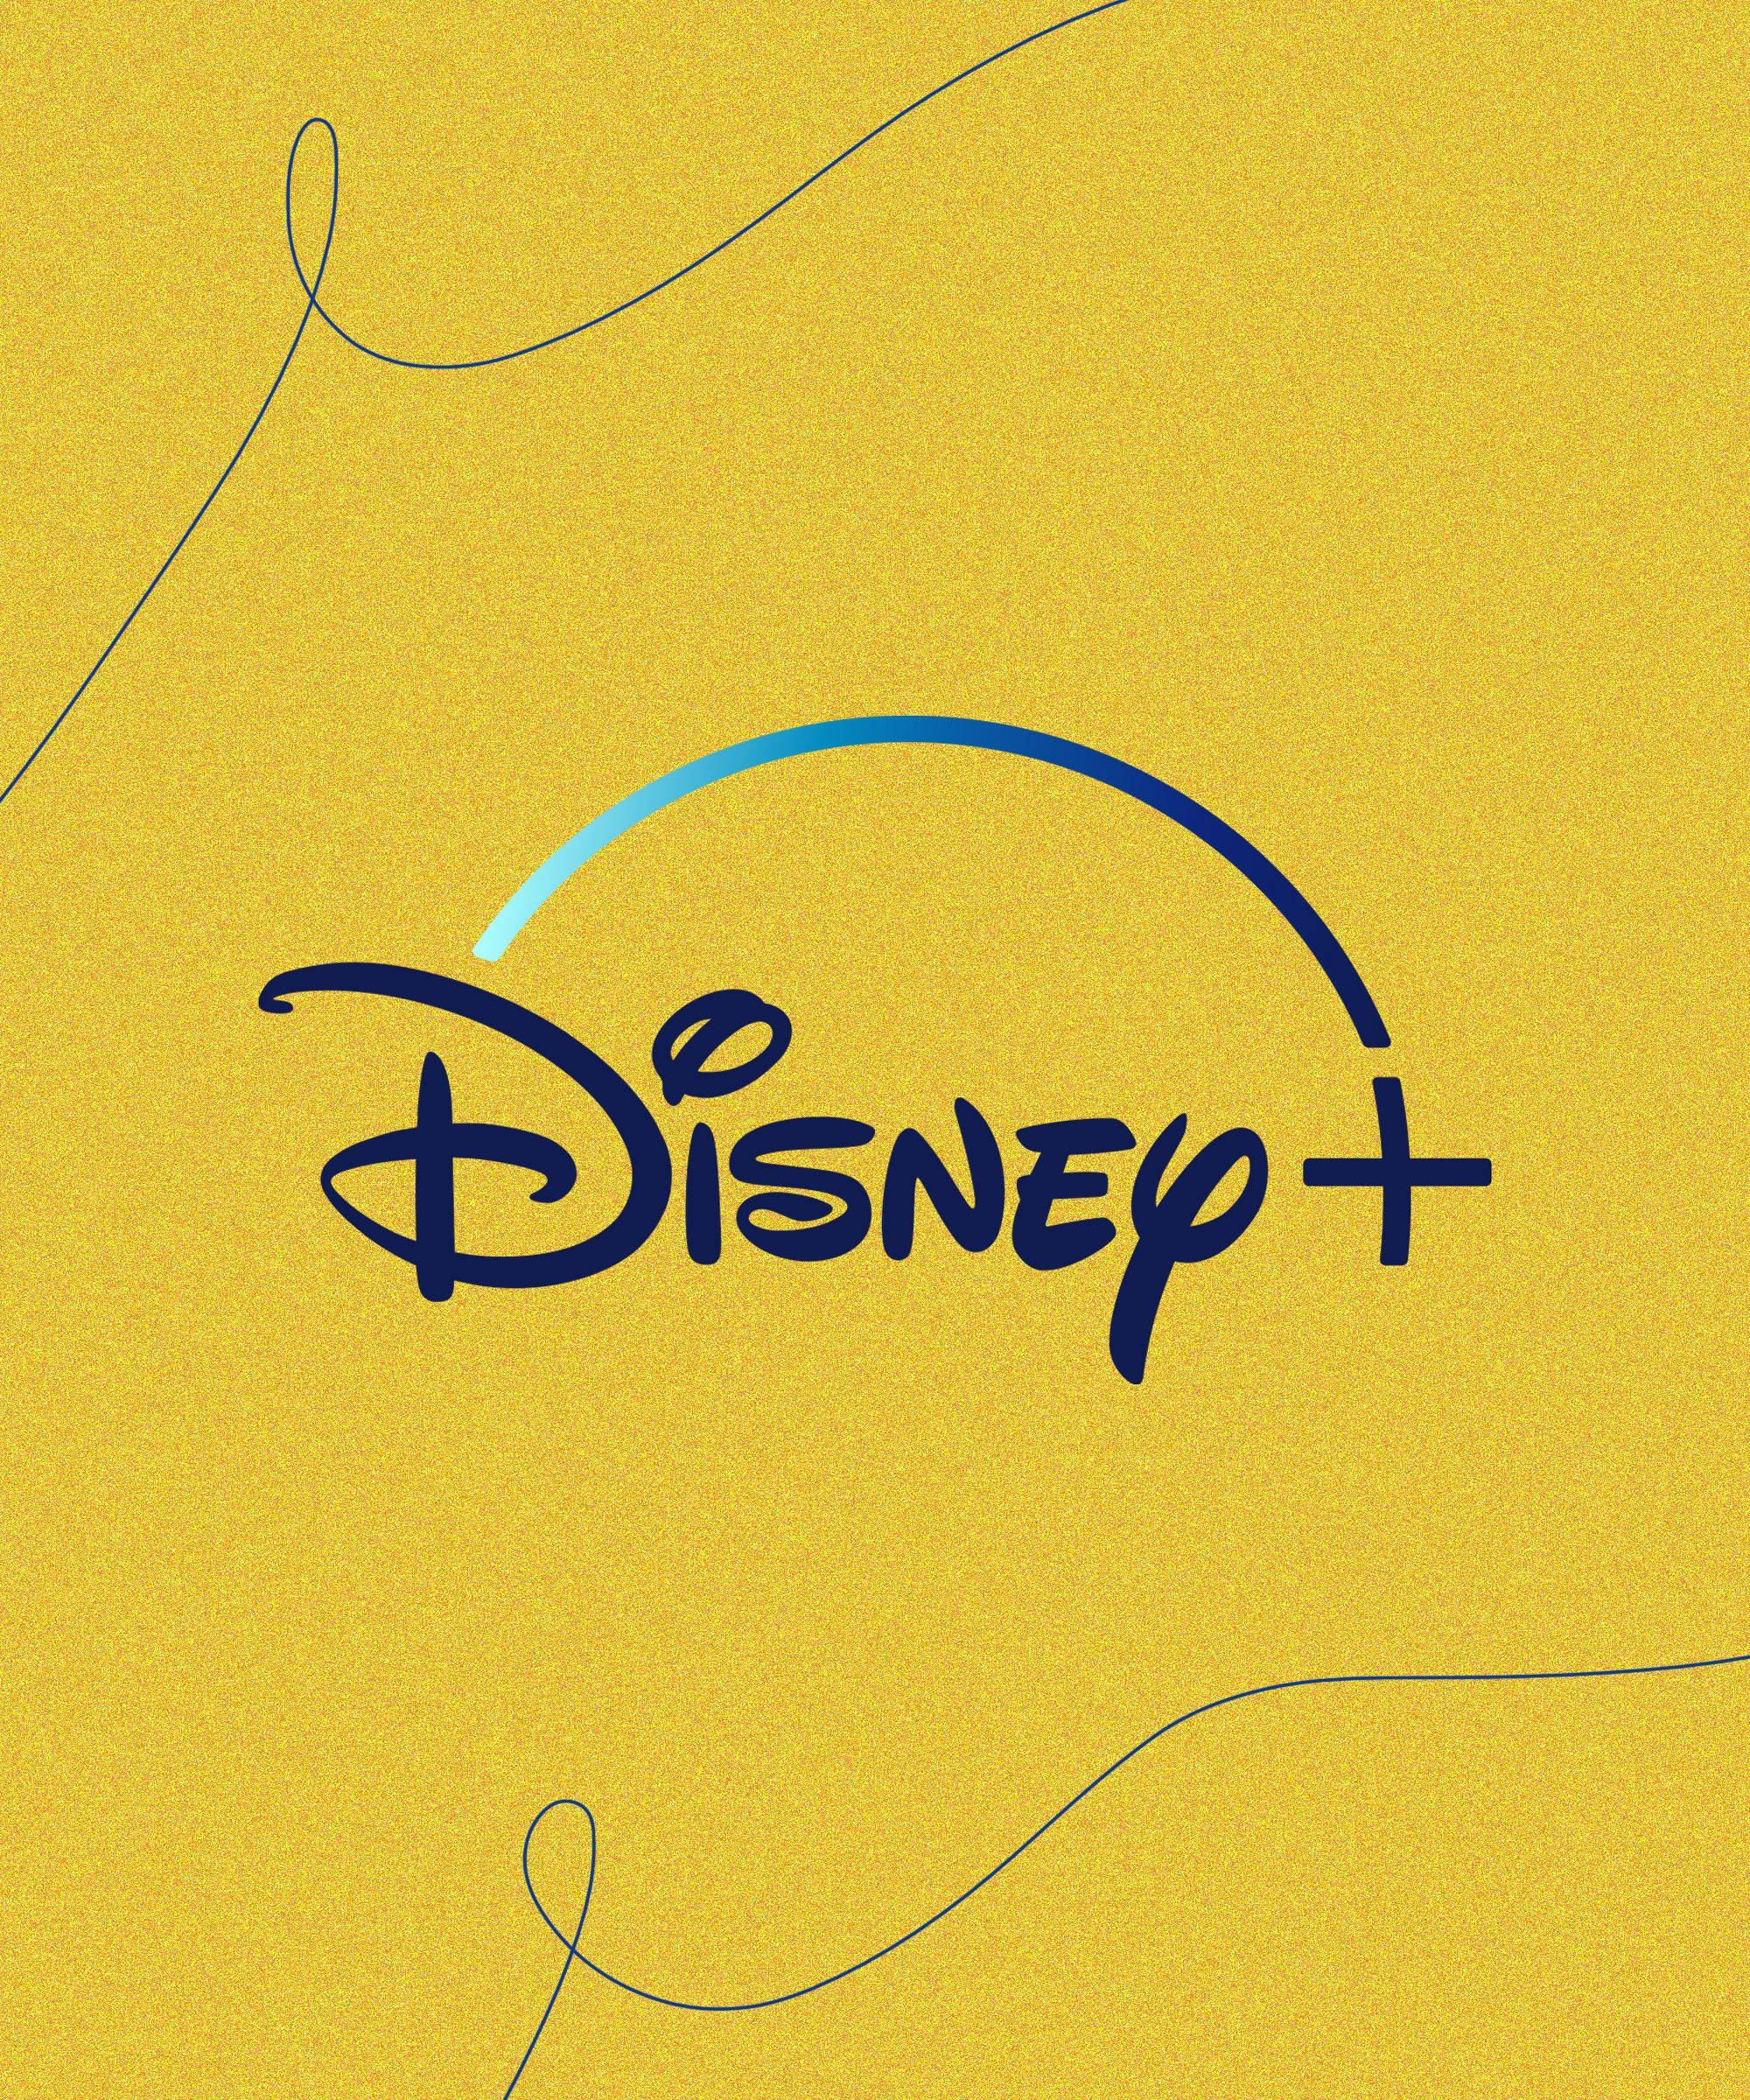 One Day At Disney Explores The Magic Of Working For The Mouse